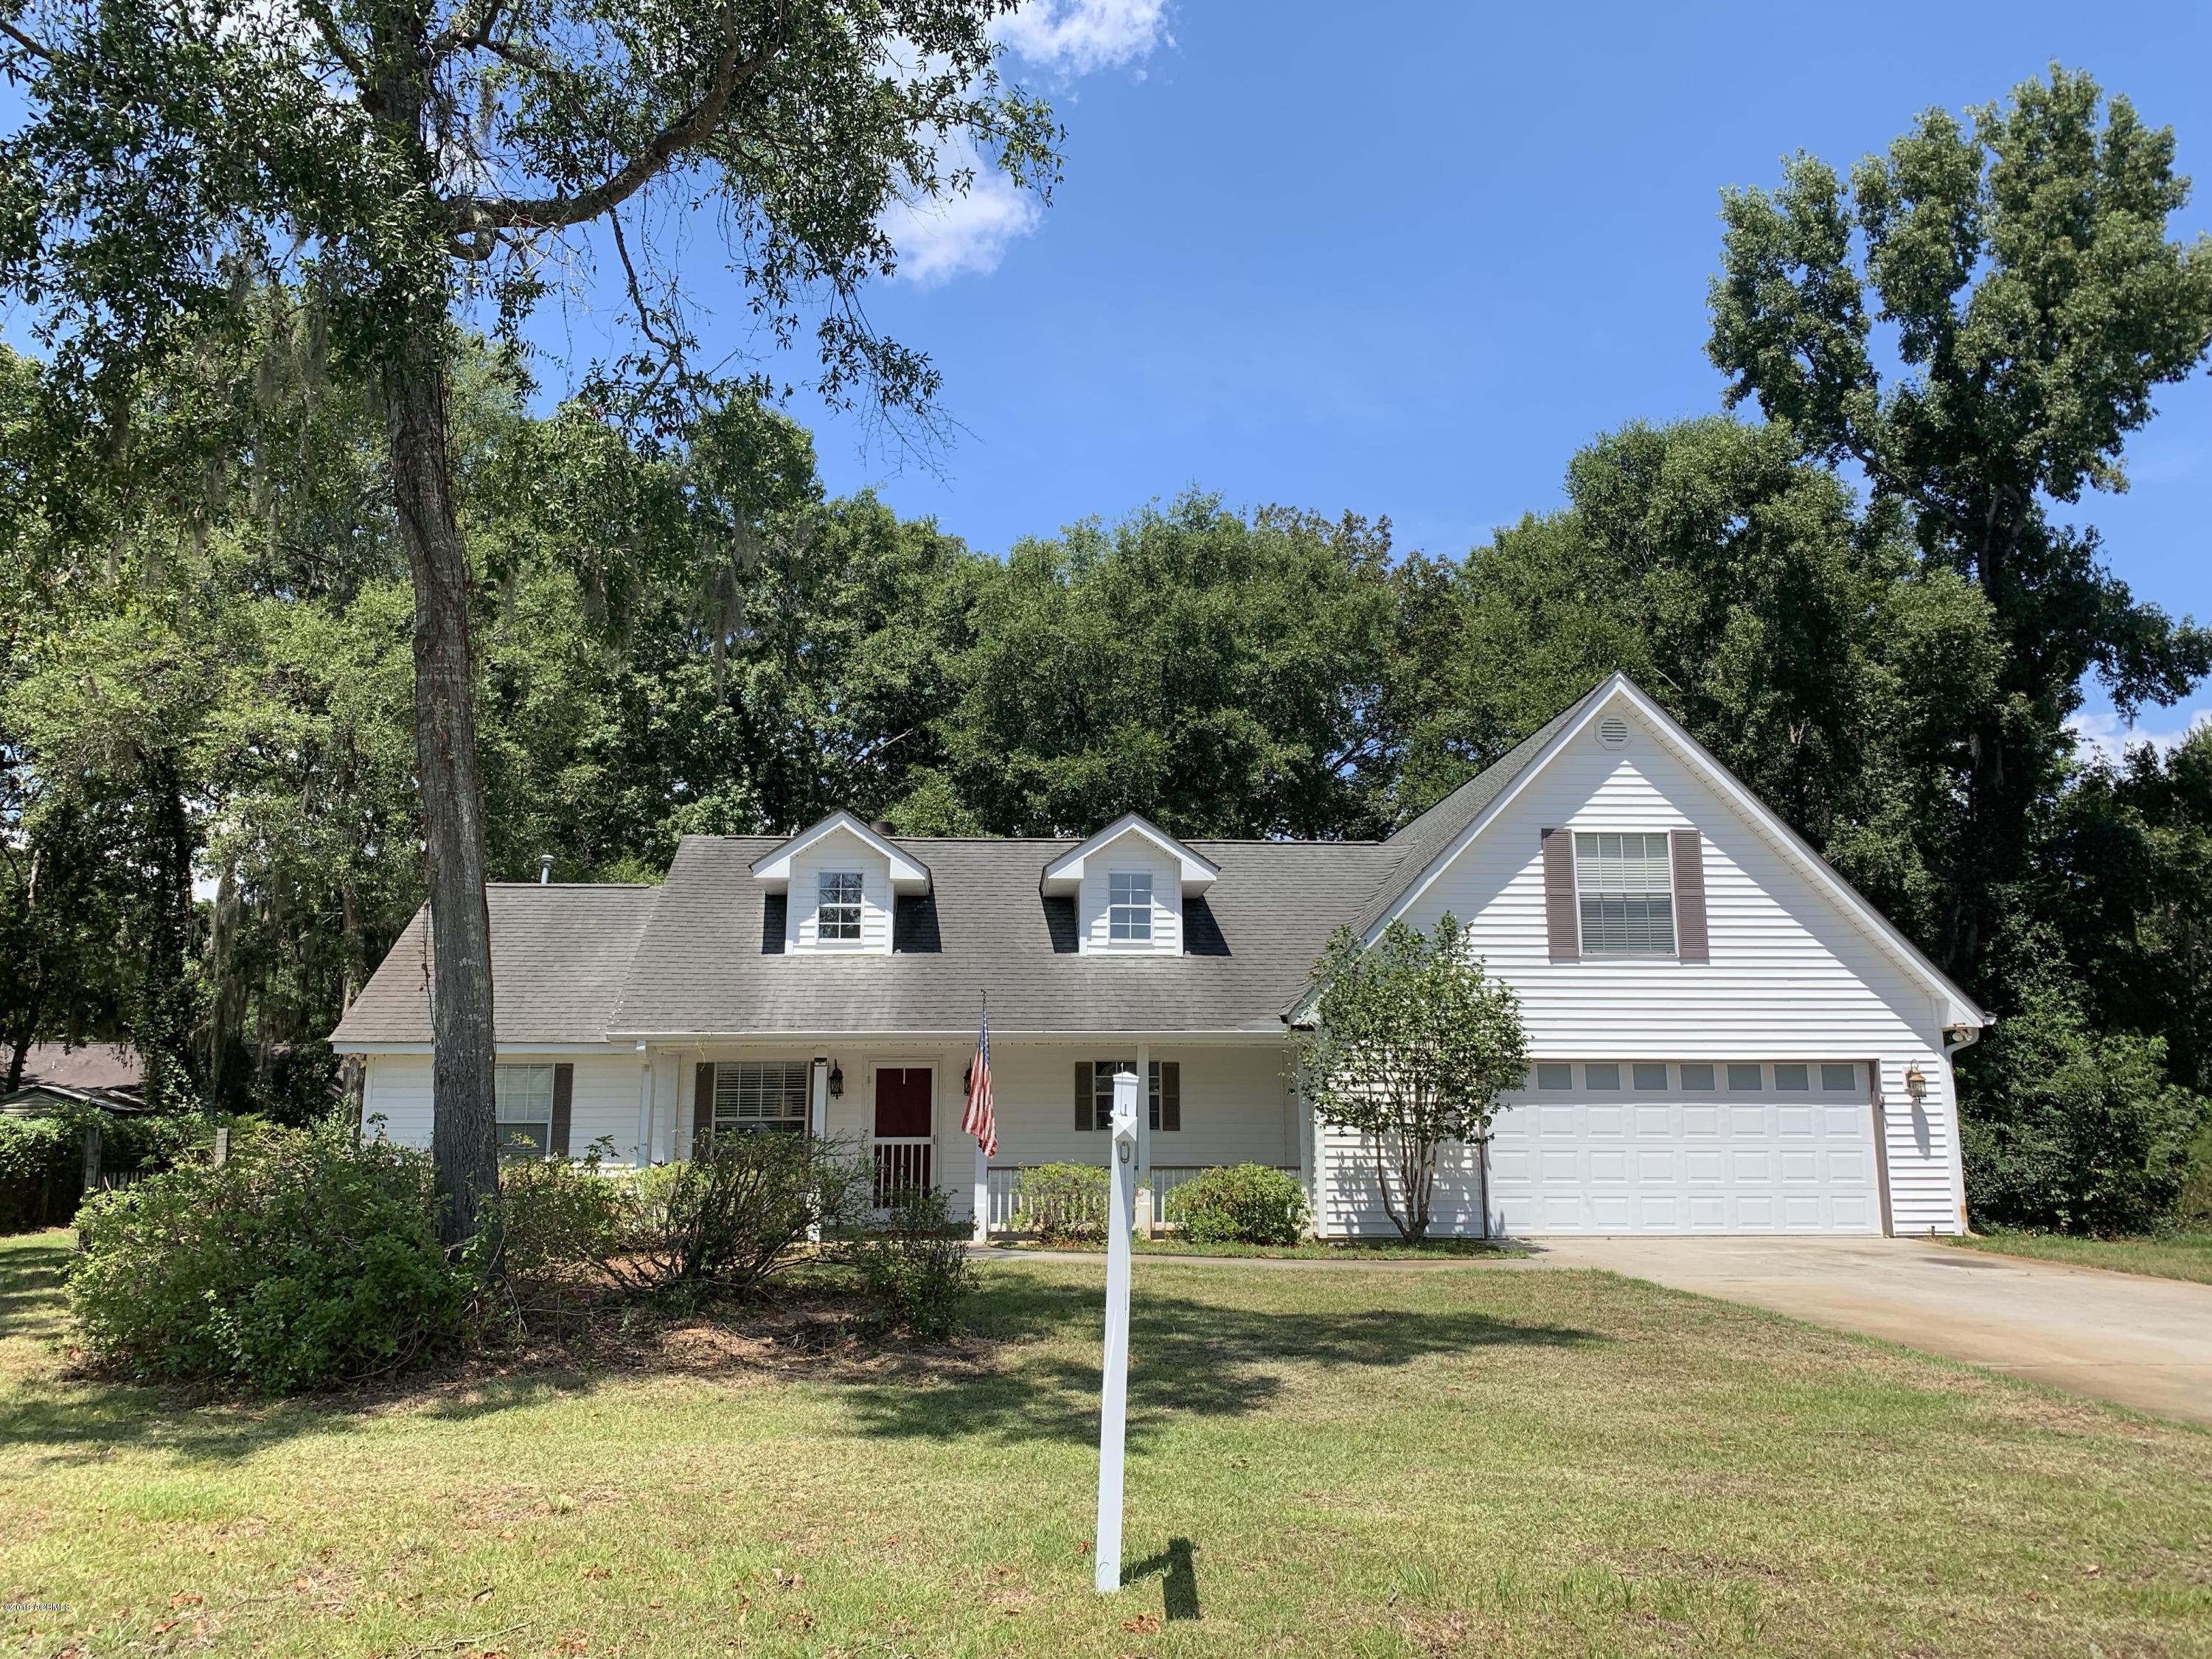 Photo of 23 Telfair Drive, Beaufort, SC 29907